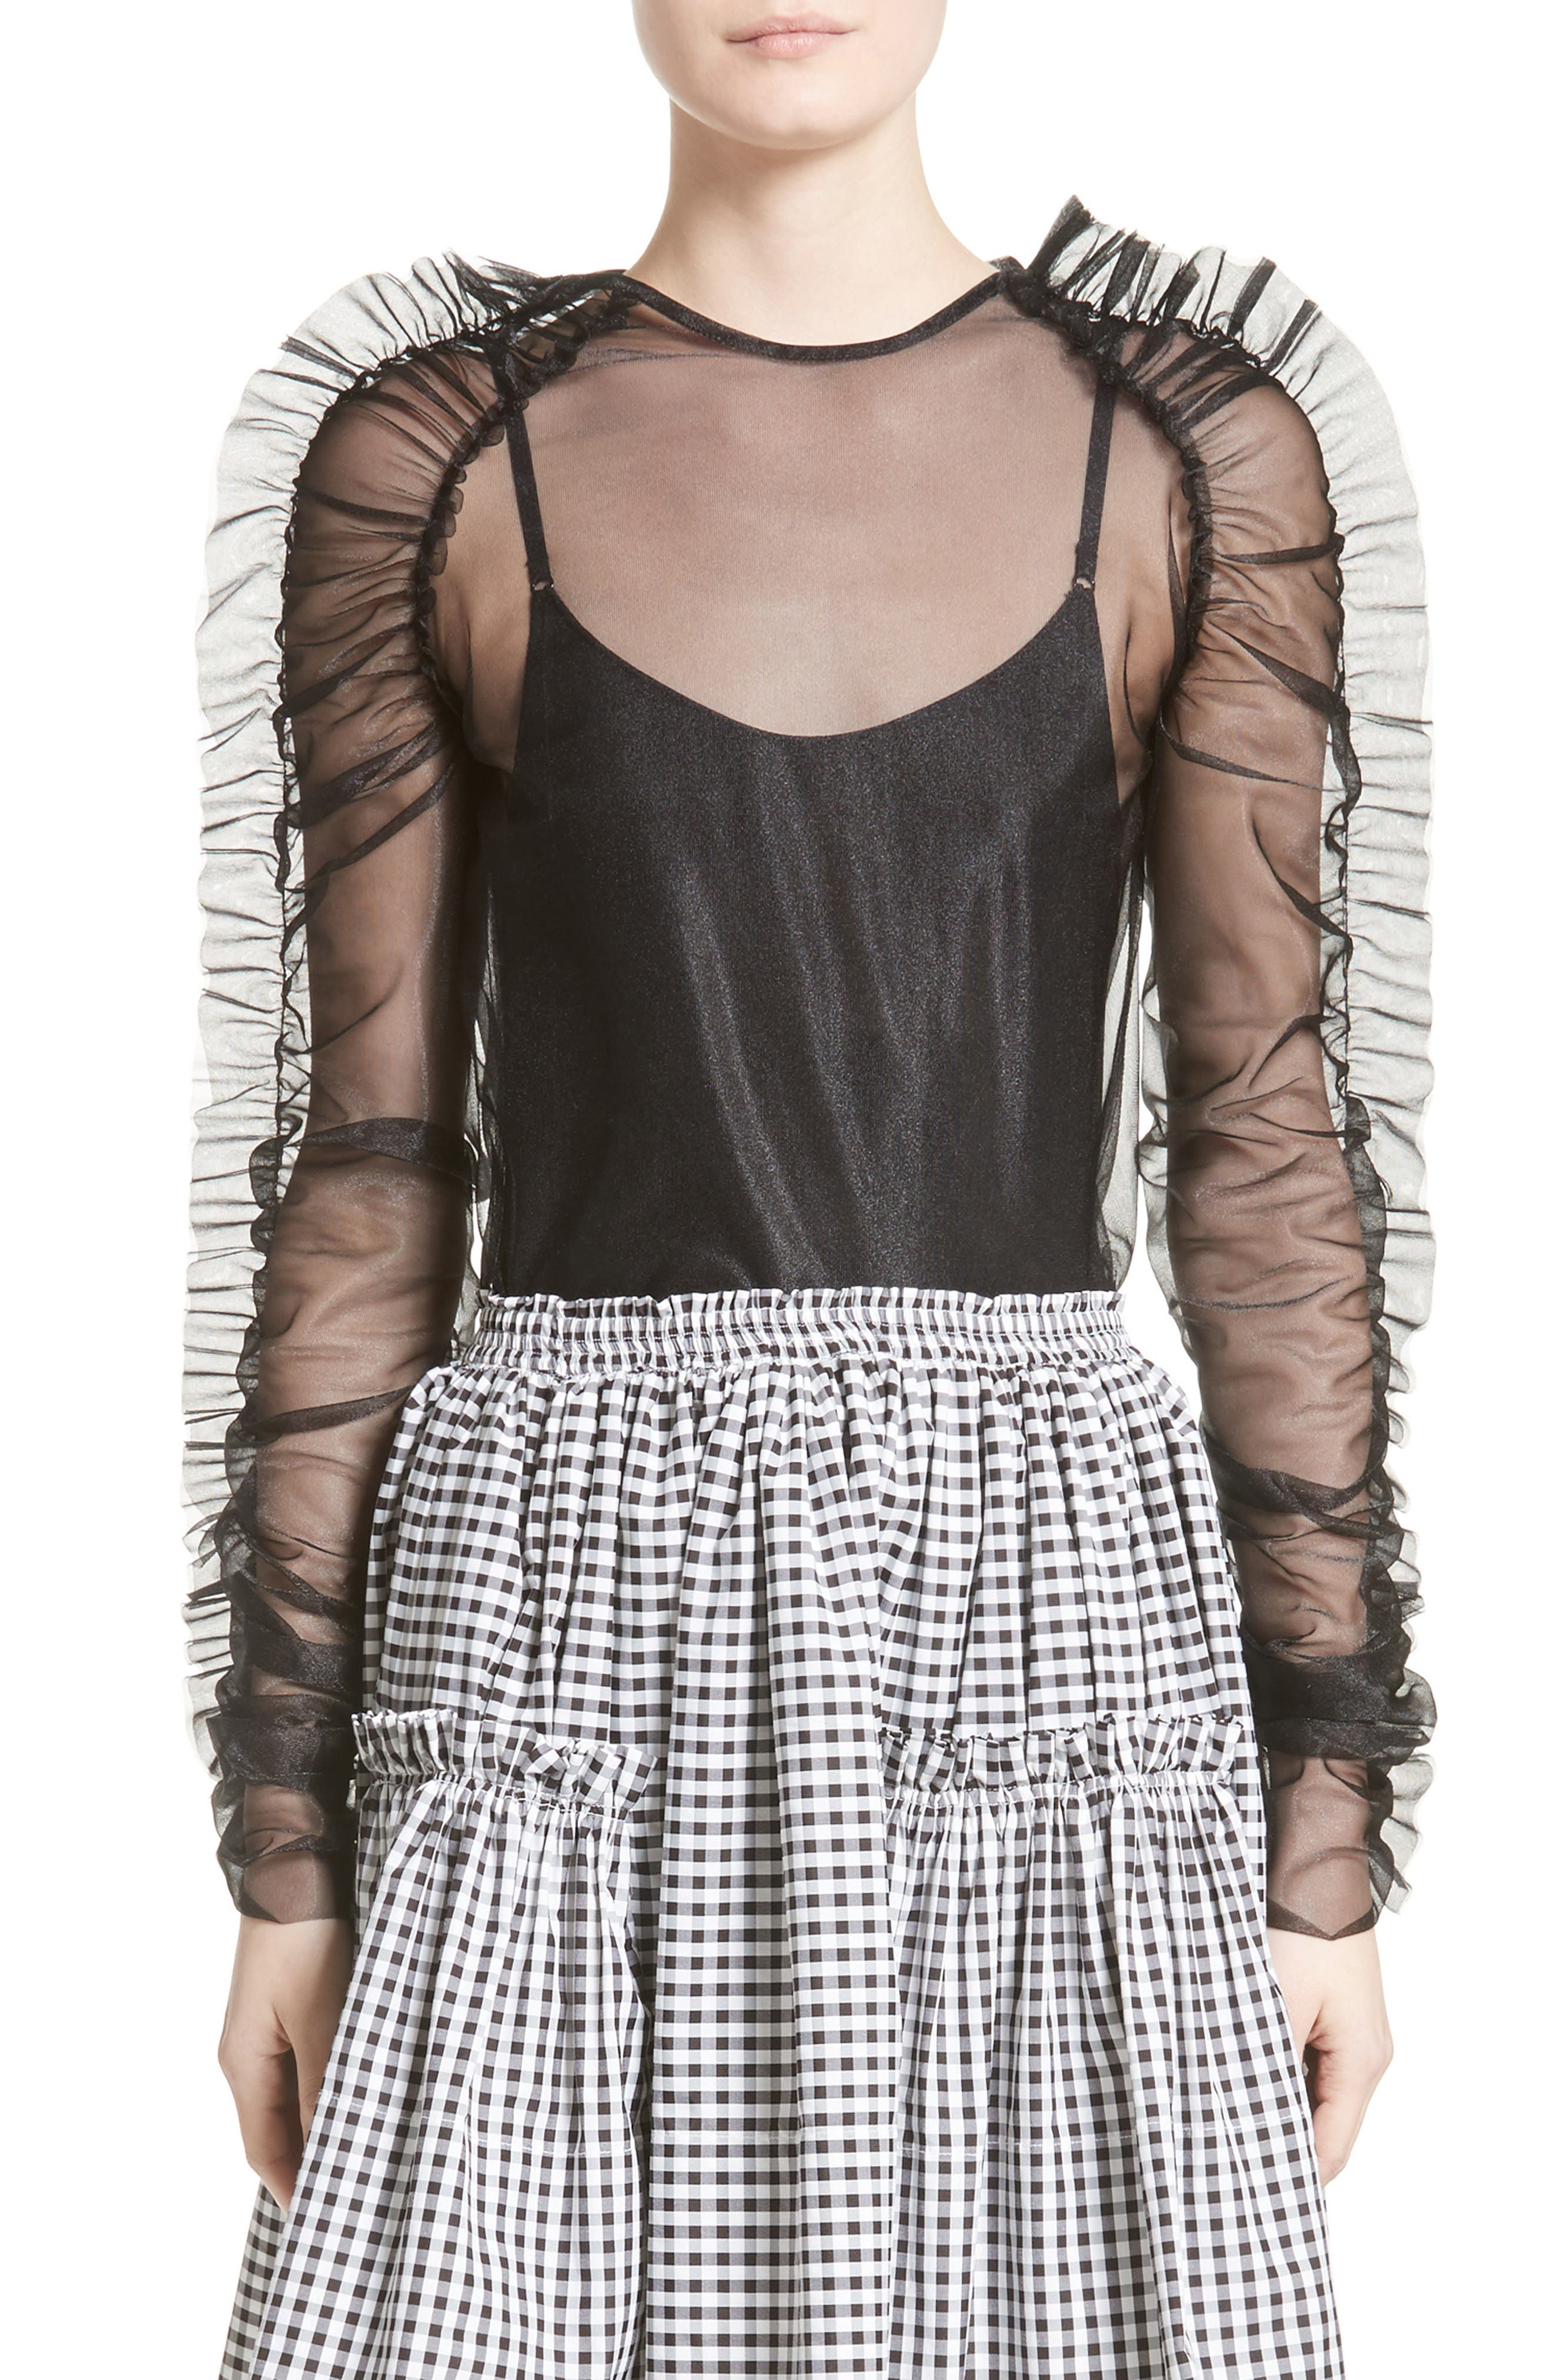 Molly Goddard Stanley Tulle Top